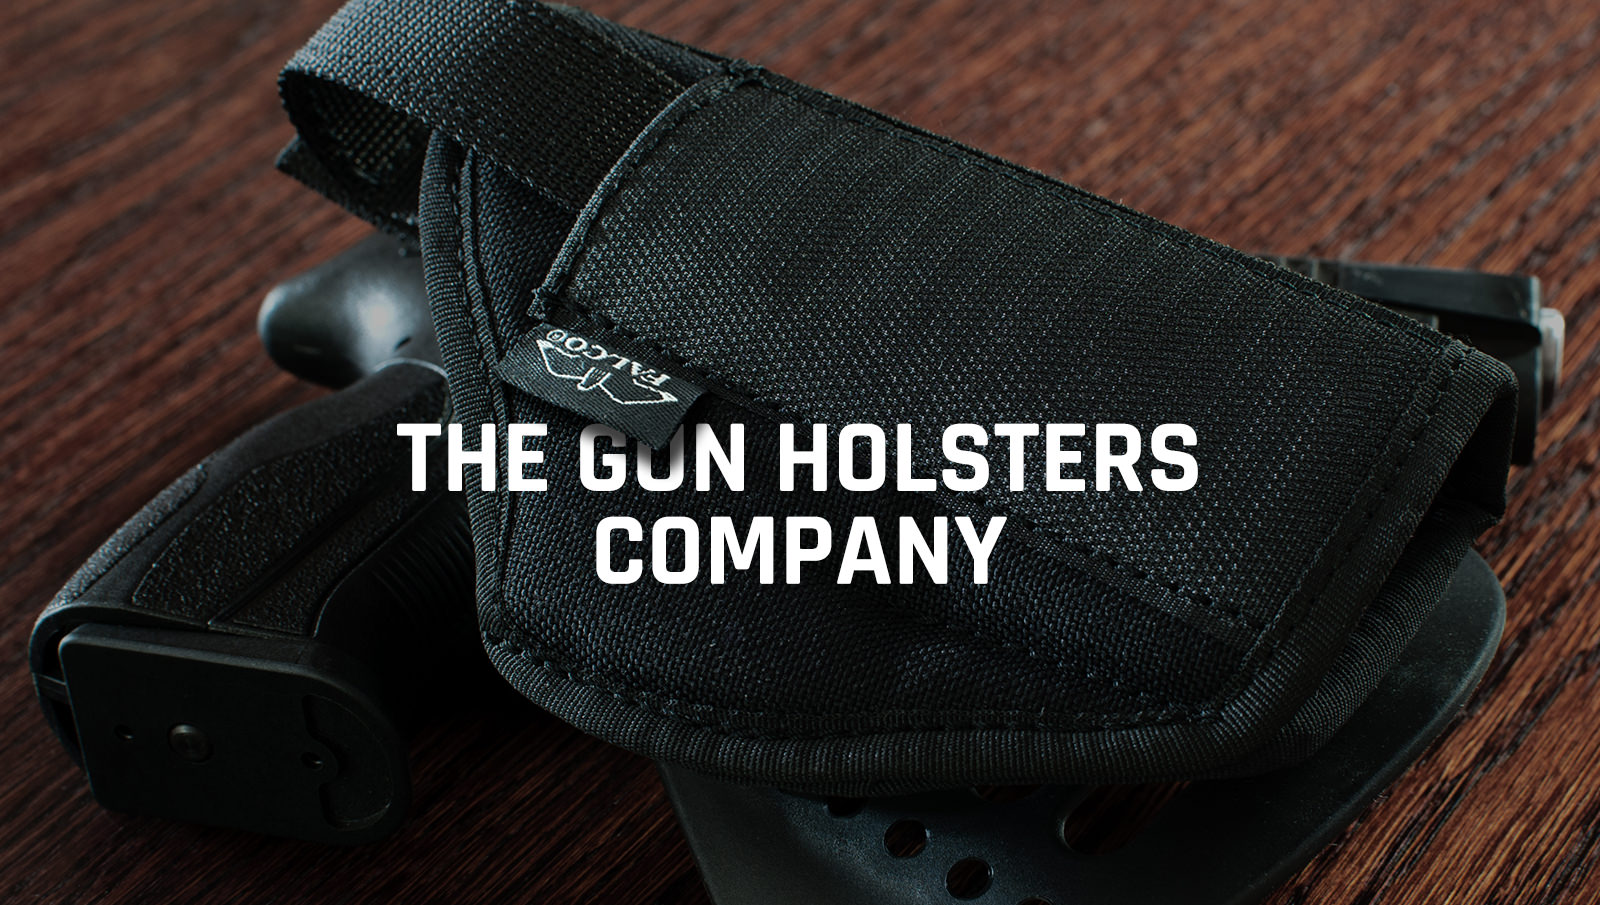 THE GUN HOLSTERS COMPANY